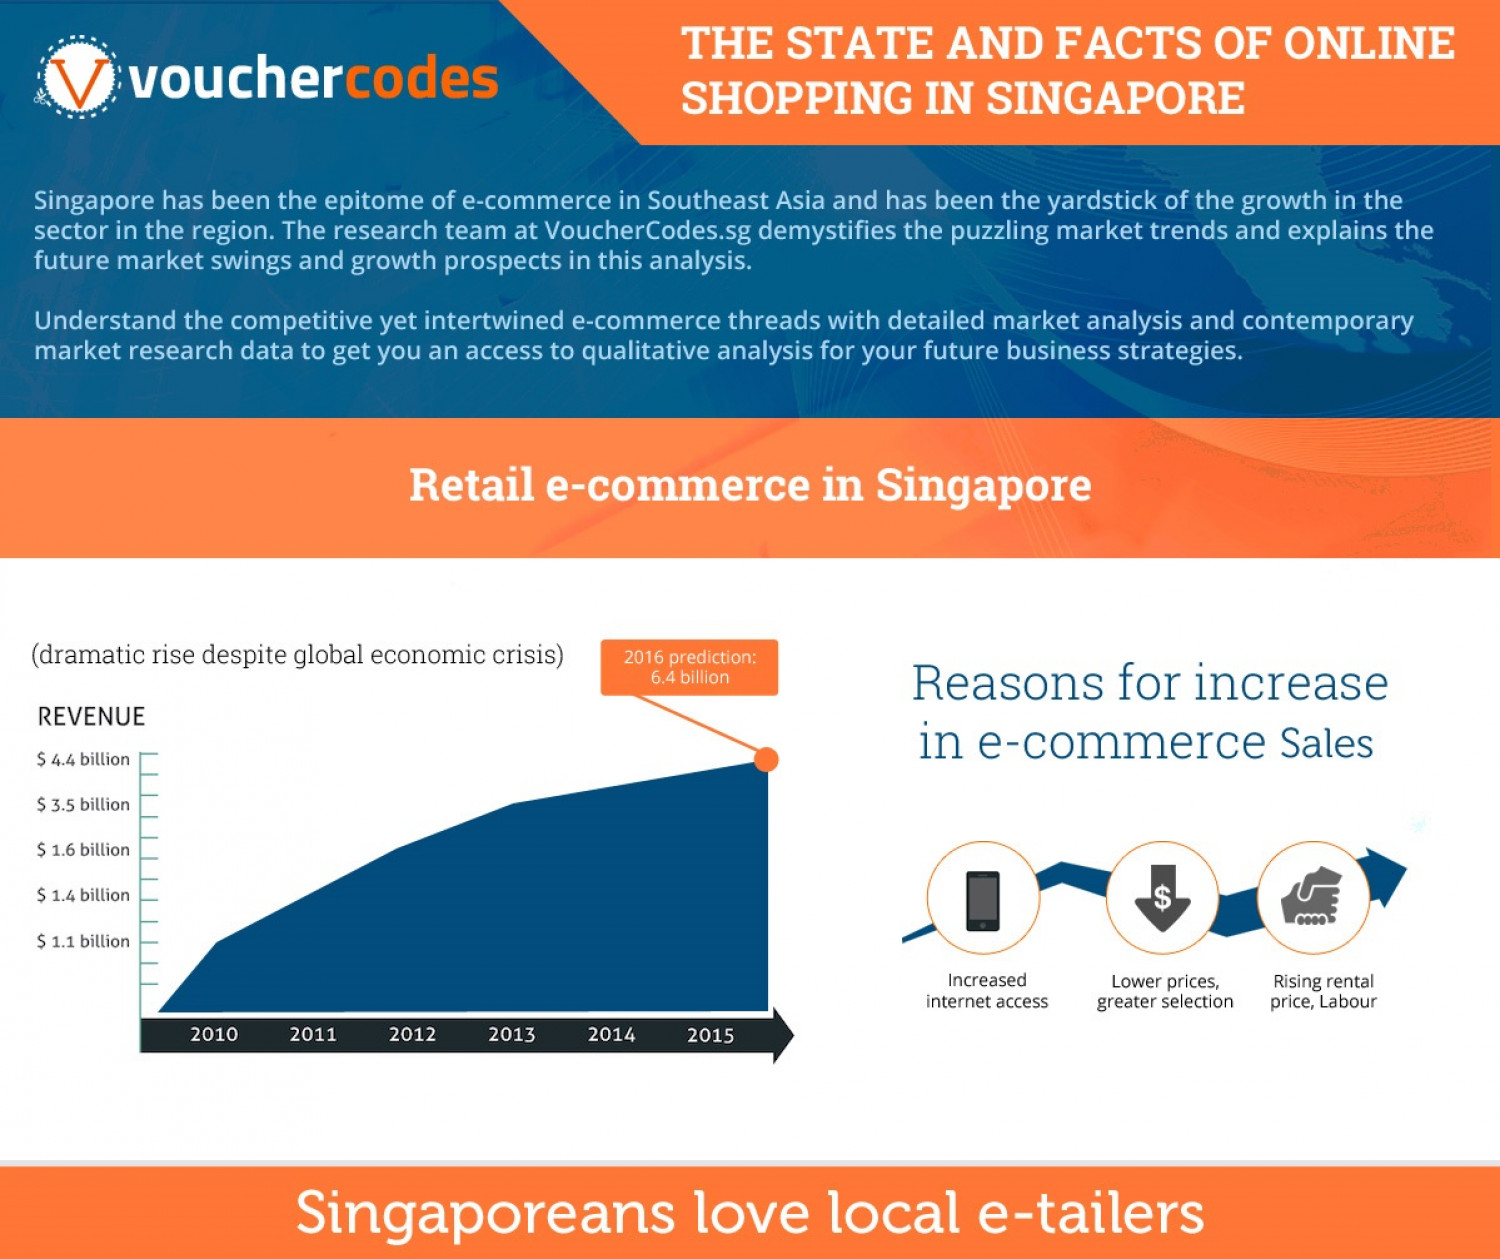 Facts of Online Shopping in Singapore Infographic